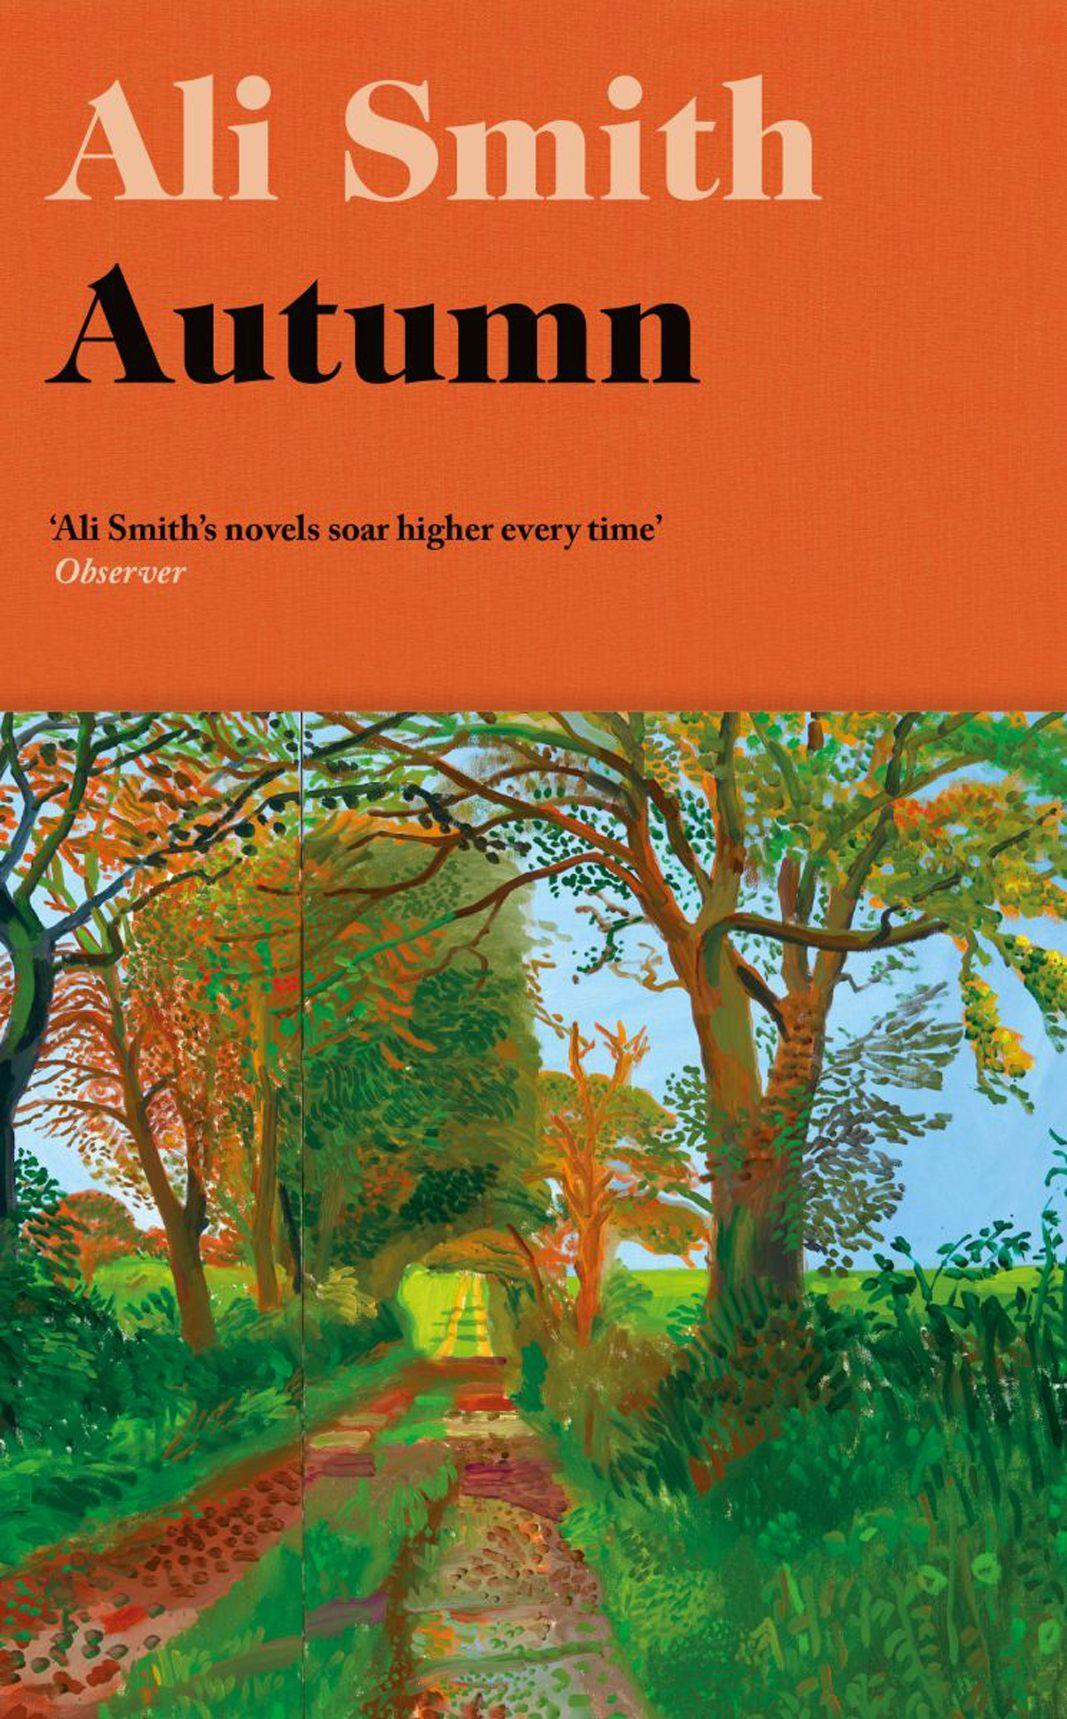 """<p><em><strong>Autumn</strong></em></p> <p>By Ali Smith</p> <p>Described as the first """"post-Brexit novel"""", the peerless Ali Smith may have written her latest work extraordinarily quickly but you'd never know it. <em>Autumn</em> is set in a divided Britain after a <a href=""""http://www.refinery29.uk/brexit-voting-analysis"""" rel=""""nofollow noopener"""" target=""""_blank"""" data-ylk=""""slk:politically historic summer"""" class=""""link rapid-noclick-resp"""">politically historic summer</a> and asks the question: in a world where borders and walls (cc: President-elect Trump) are springing up all over the place, what do richness and worth really mean today? <em>Autumn</em> is the first of a seasonal quartet of books so we can expect another bountiful harvest from Smith soon.</p>"""